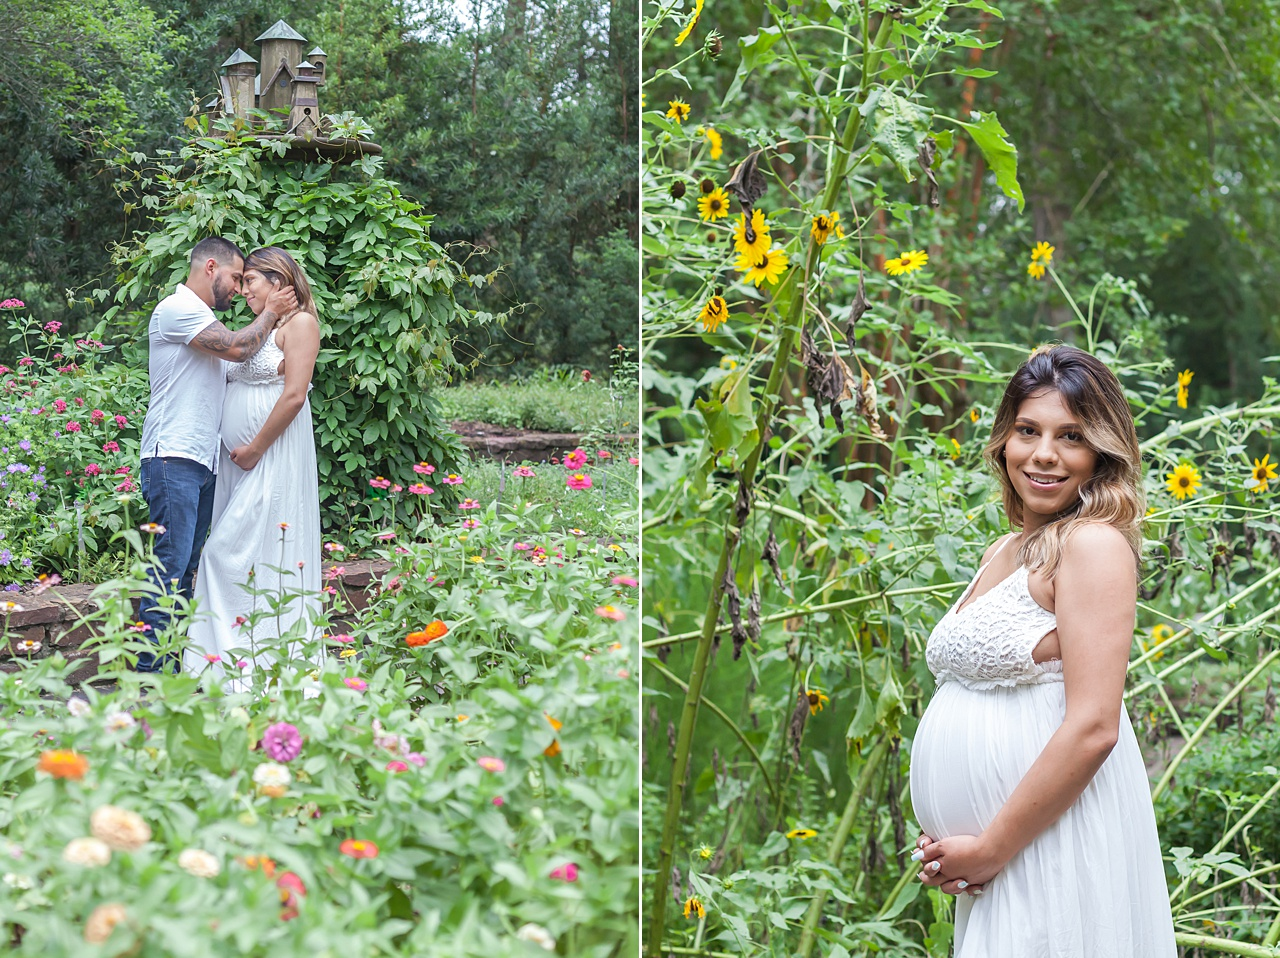 sprawling outdoor garden maternity session by kristal bean photography